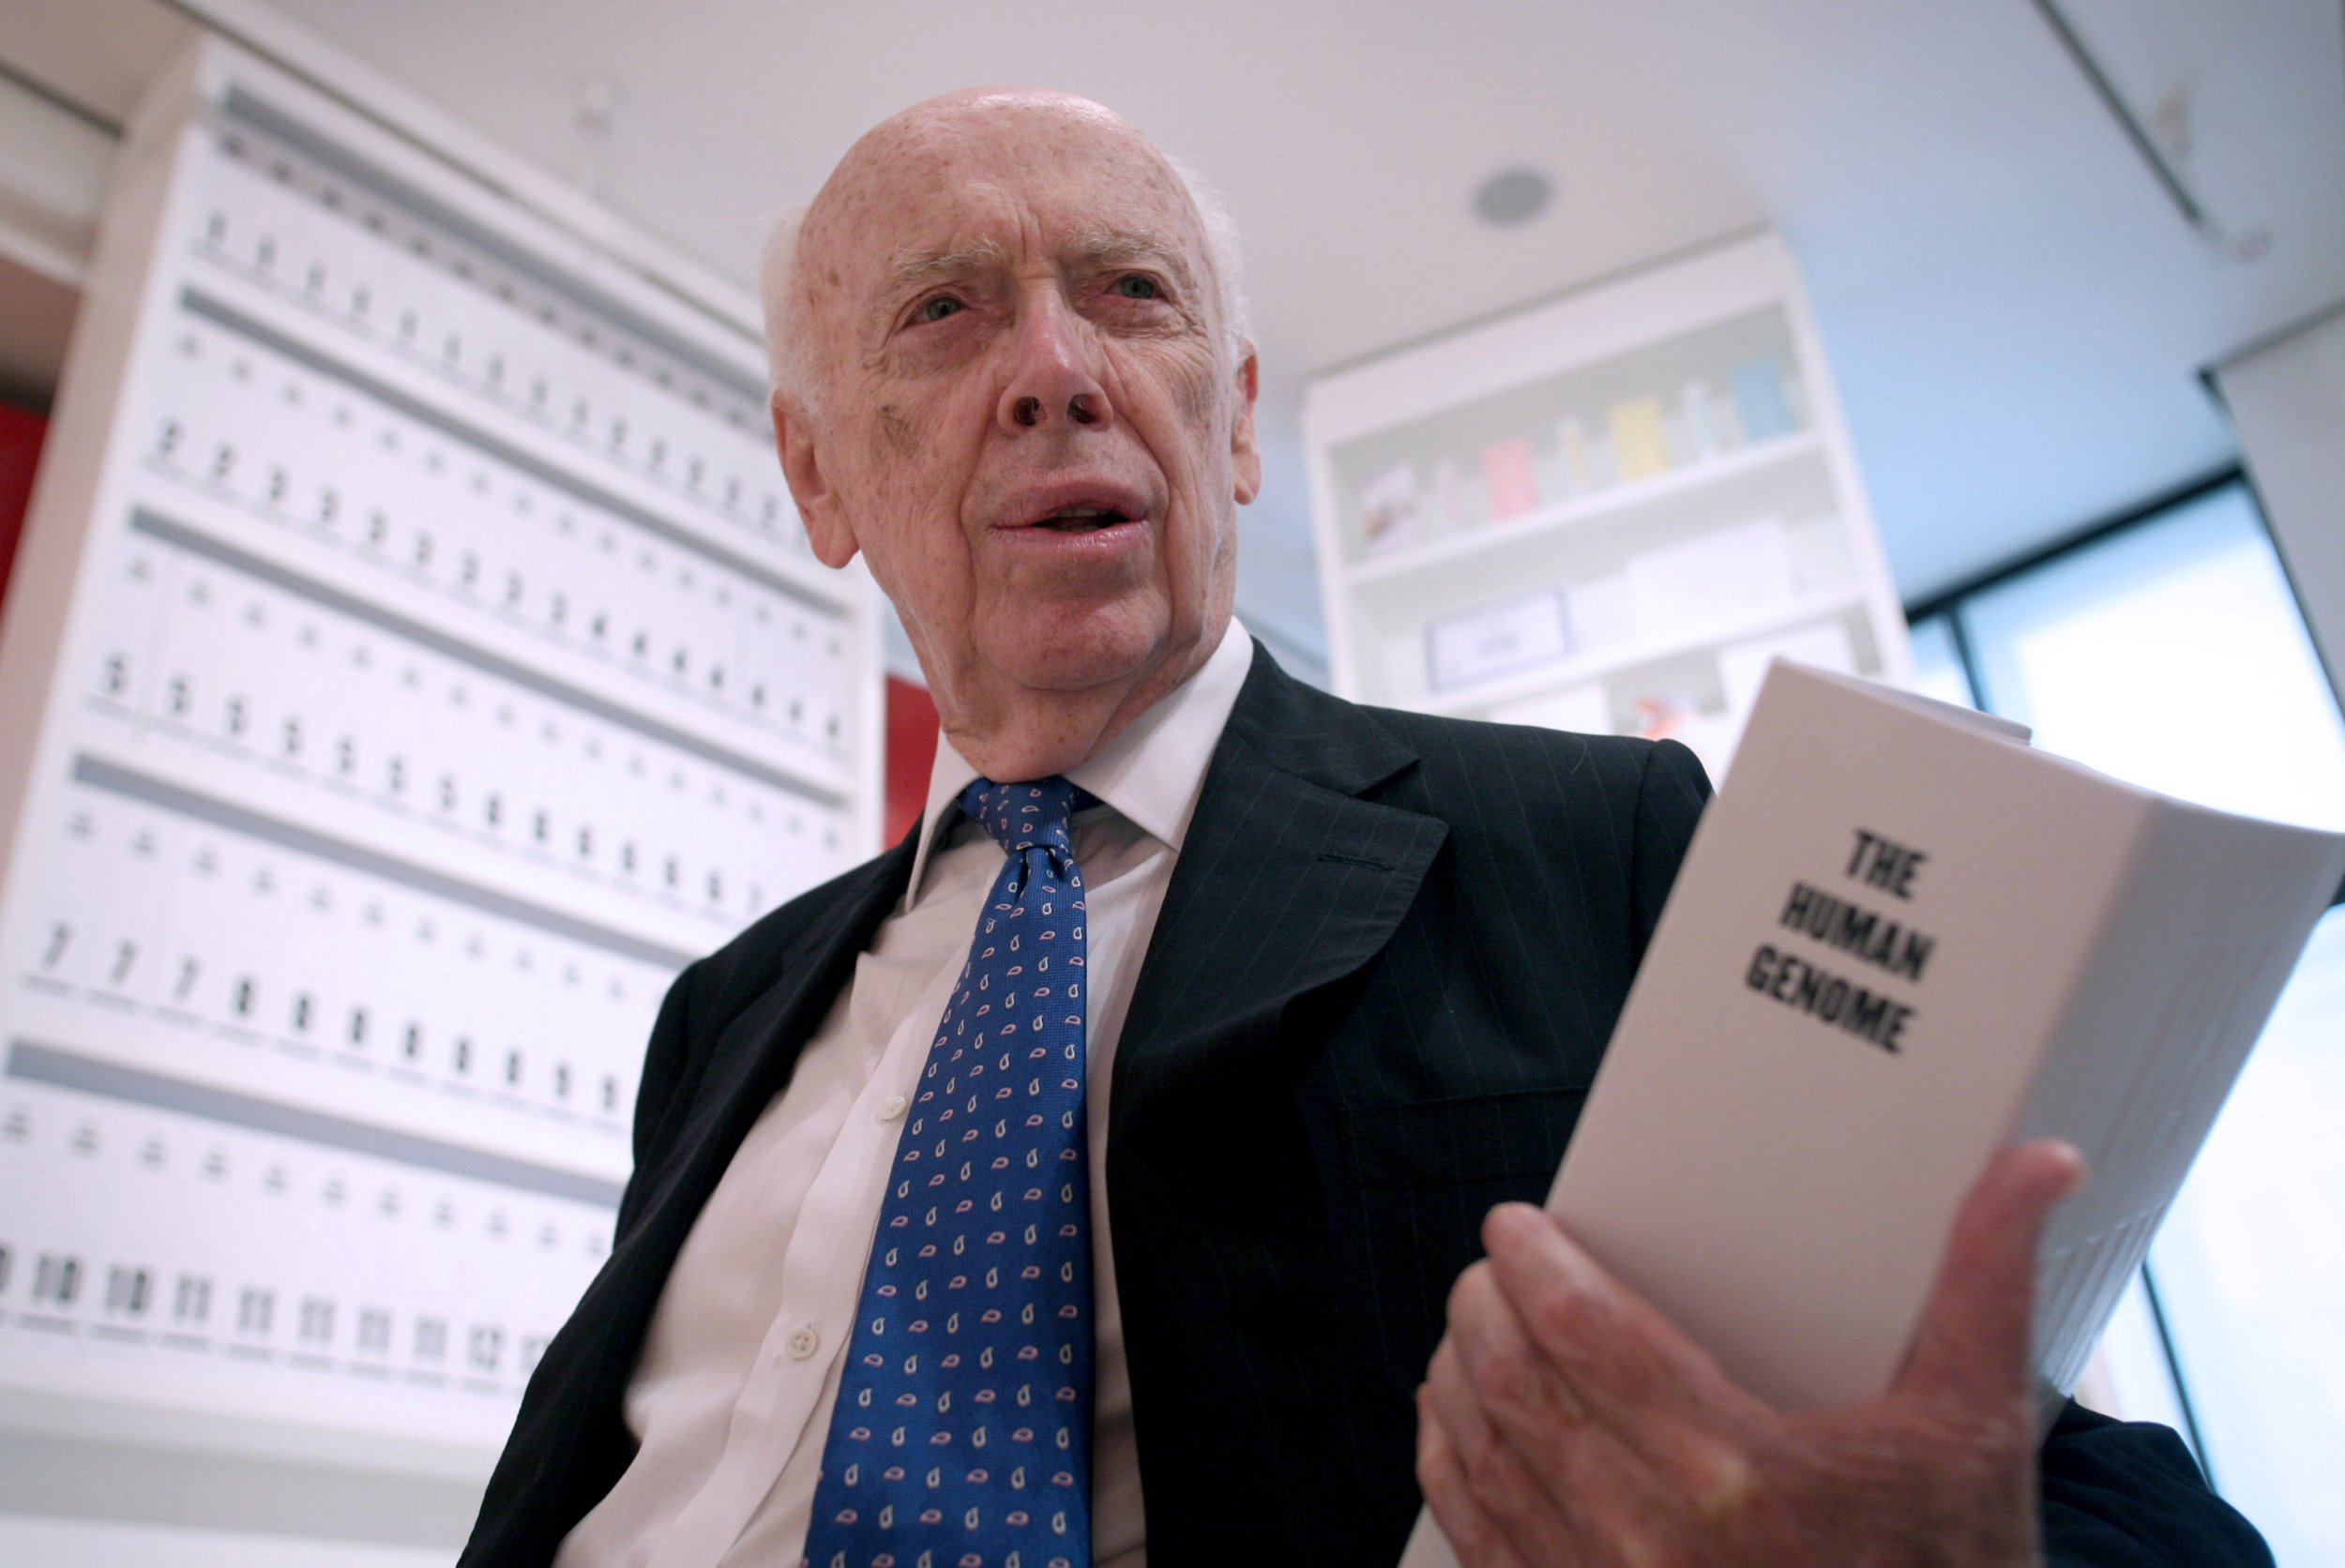 UNITED KINGDOM - JUNE 20: Nobel Prize winner, Professor James Watson, co-discoverer of the structure of DNA poses at the Wellcome Collection exhibition in central London, UK, Thursday, June 20, 2007. Watson's autobiography, 'Avoid Boring People' is published by Knopf in the U.S. and the Oxford University Press in the U.K. (Photo by Graham Barclay/Bloomberg via Getty Images)